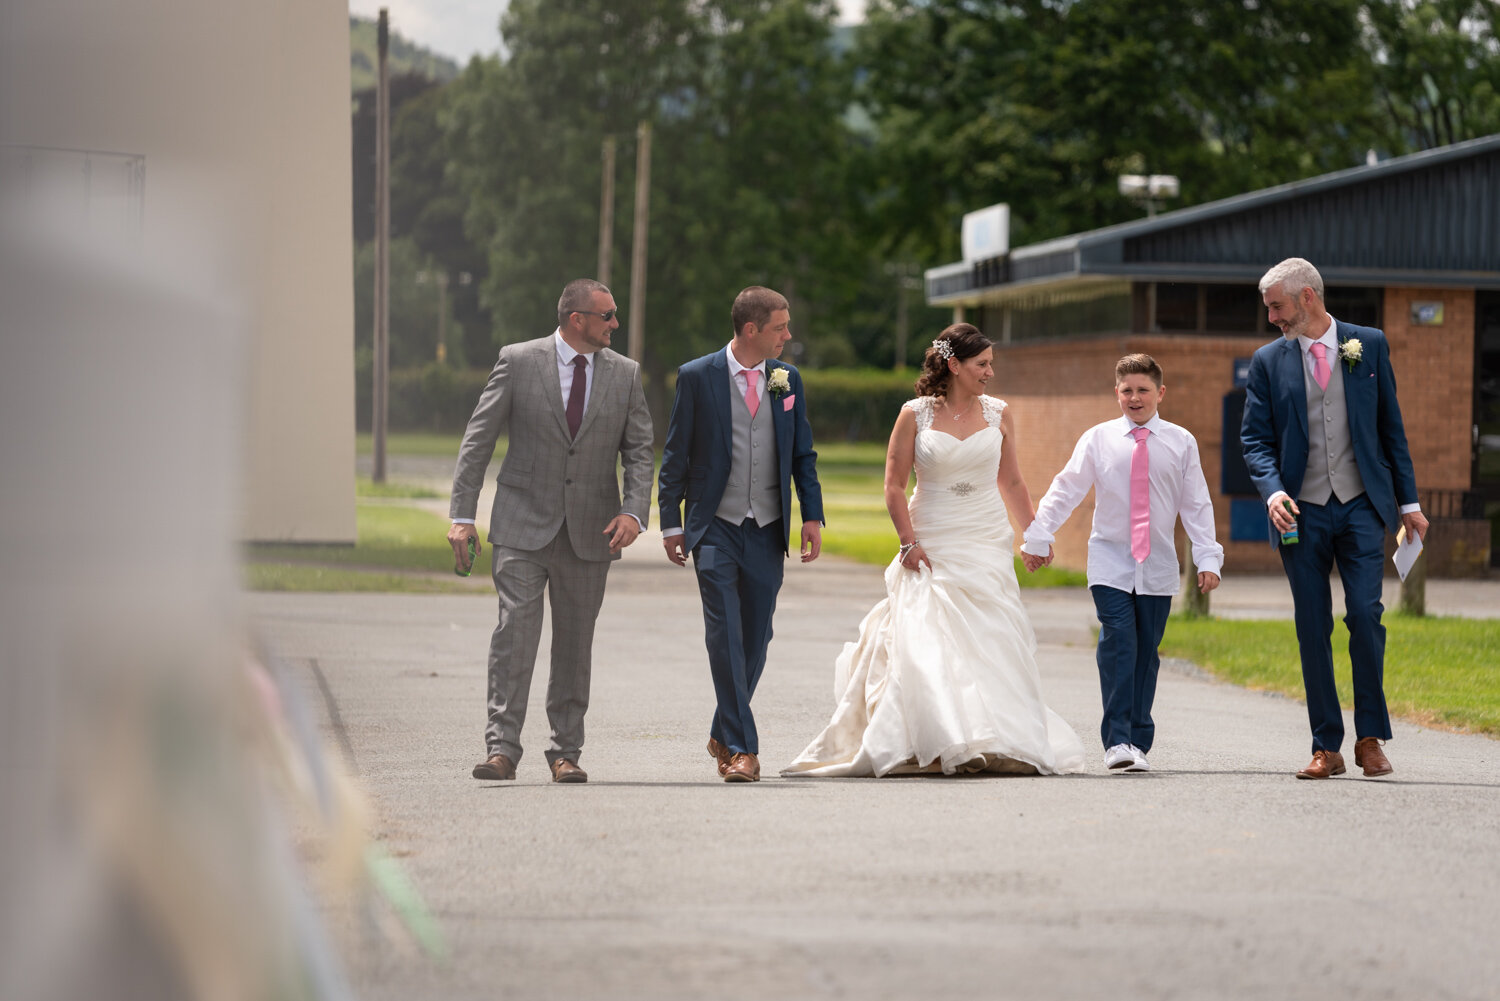 Bride, groom and guests walking to ceremony